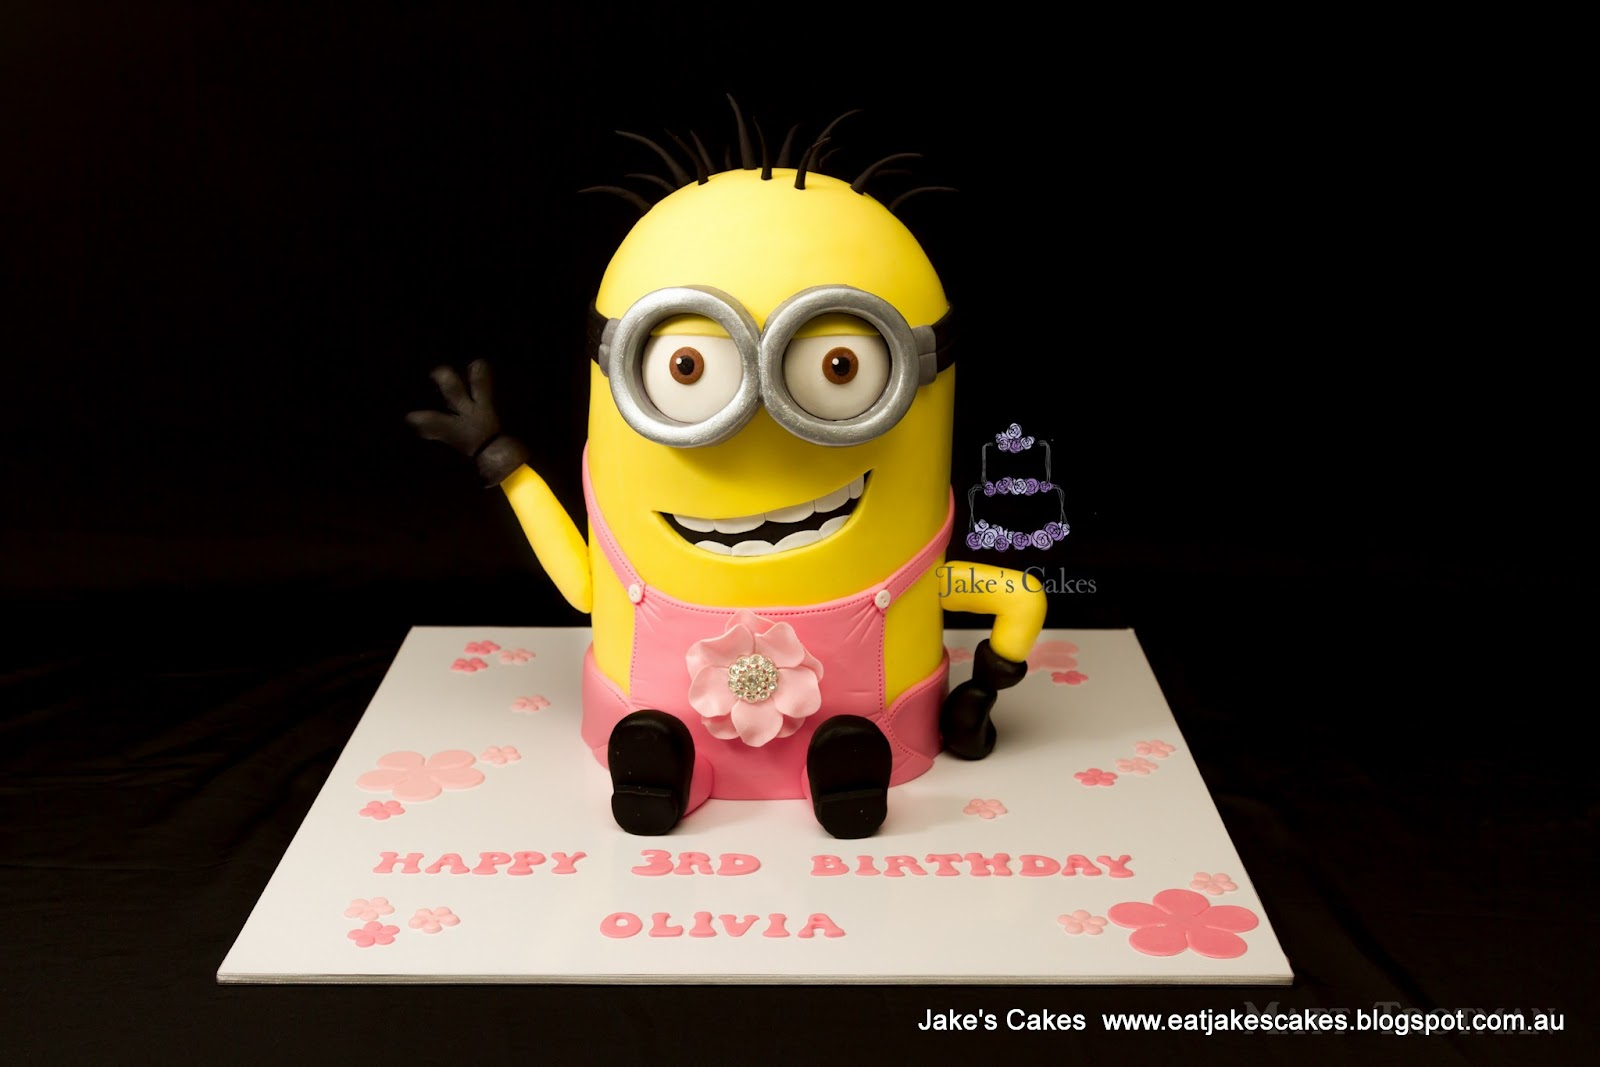 Jakes Cakes Kevin the Pink Minion Cake